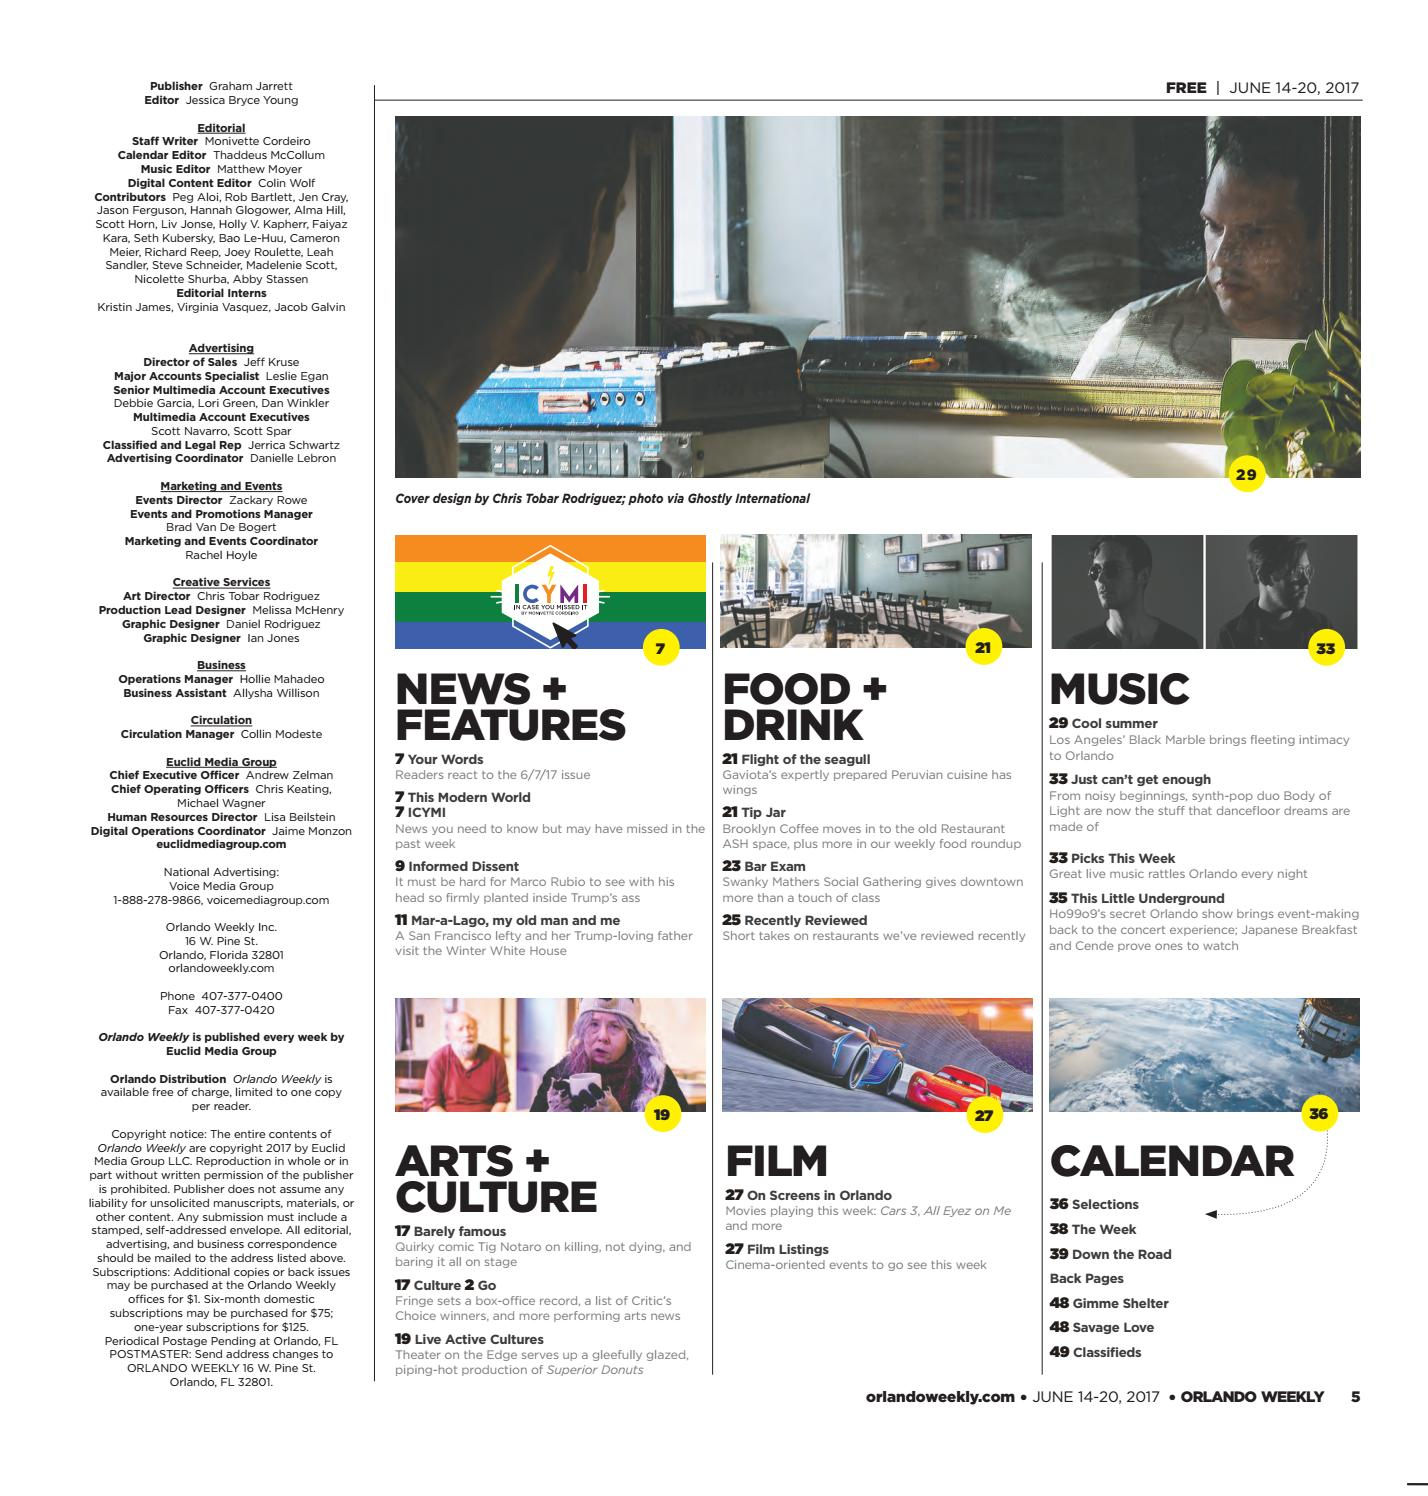 Orlando Weekly June 14 2017 by Euclid Media Group - issuu